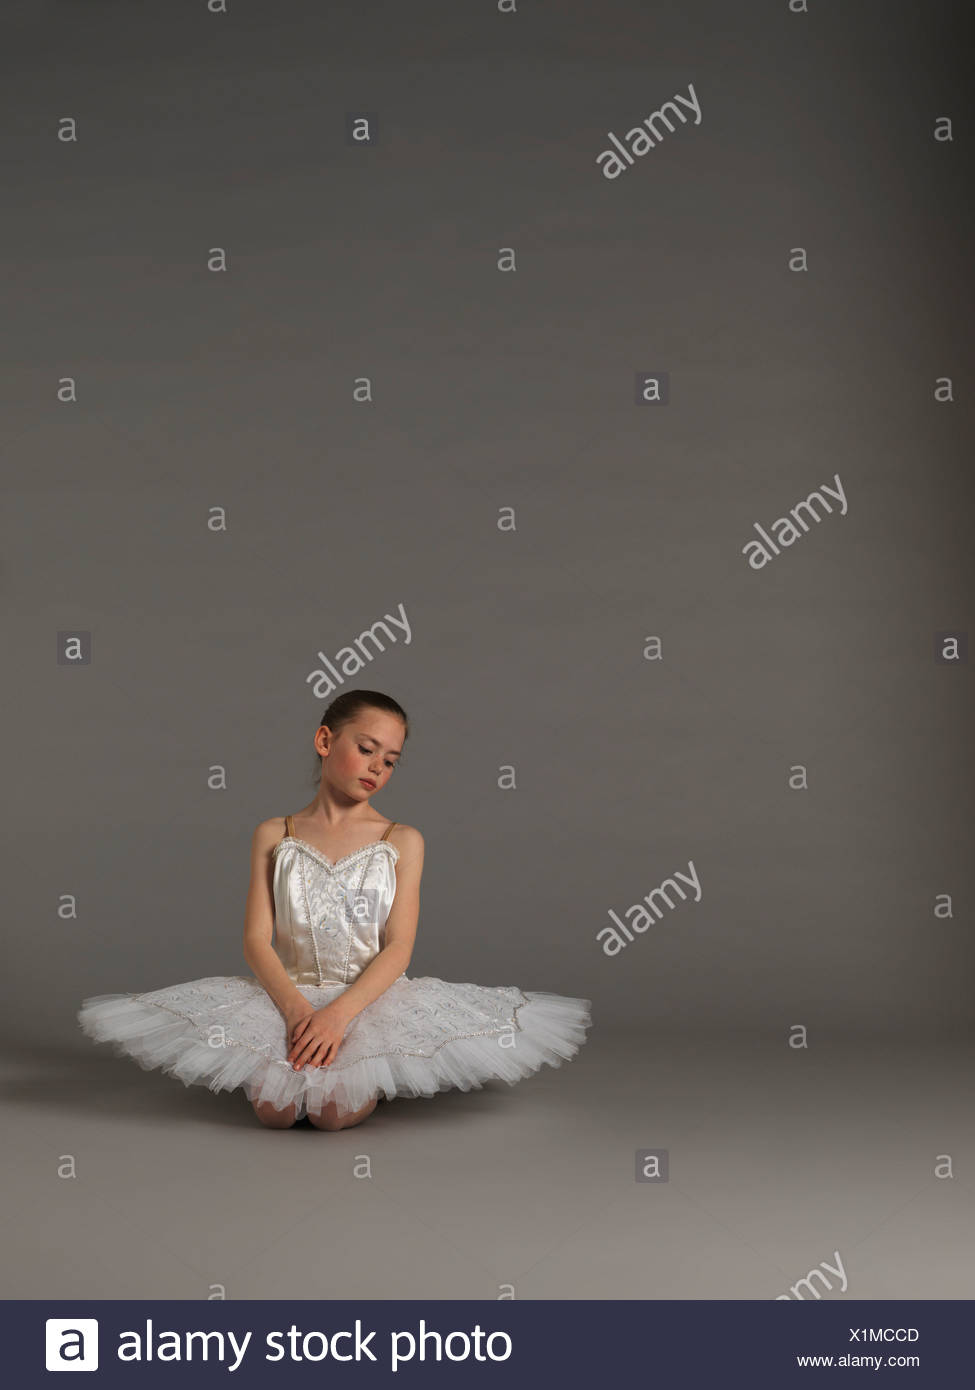 Girl in white tutu kneeling. - Stock Image